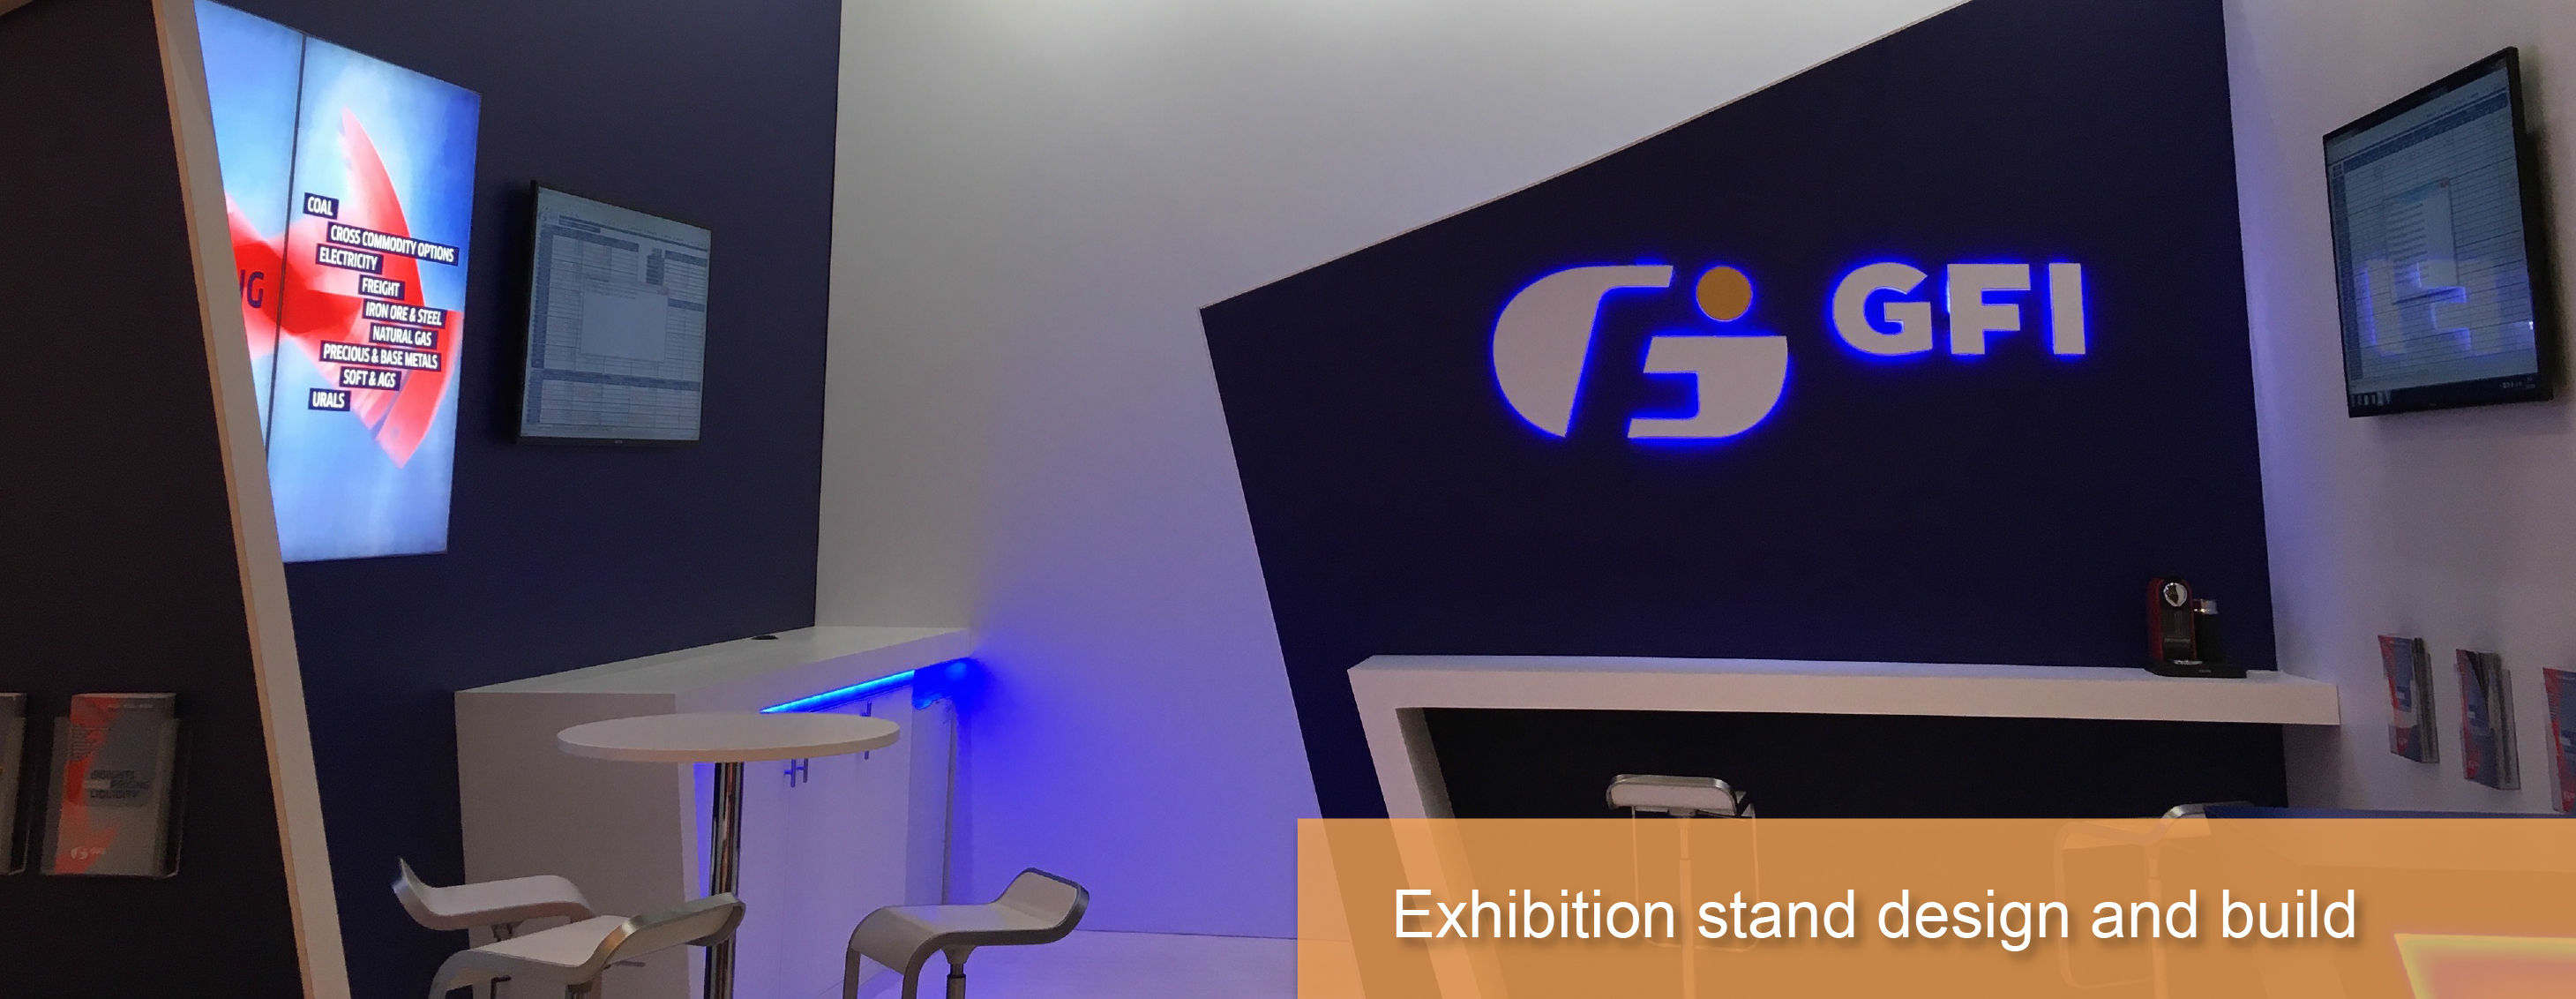 Exhibition Stand Options : Exhibition stand design and build bill bowden event logistics